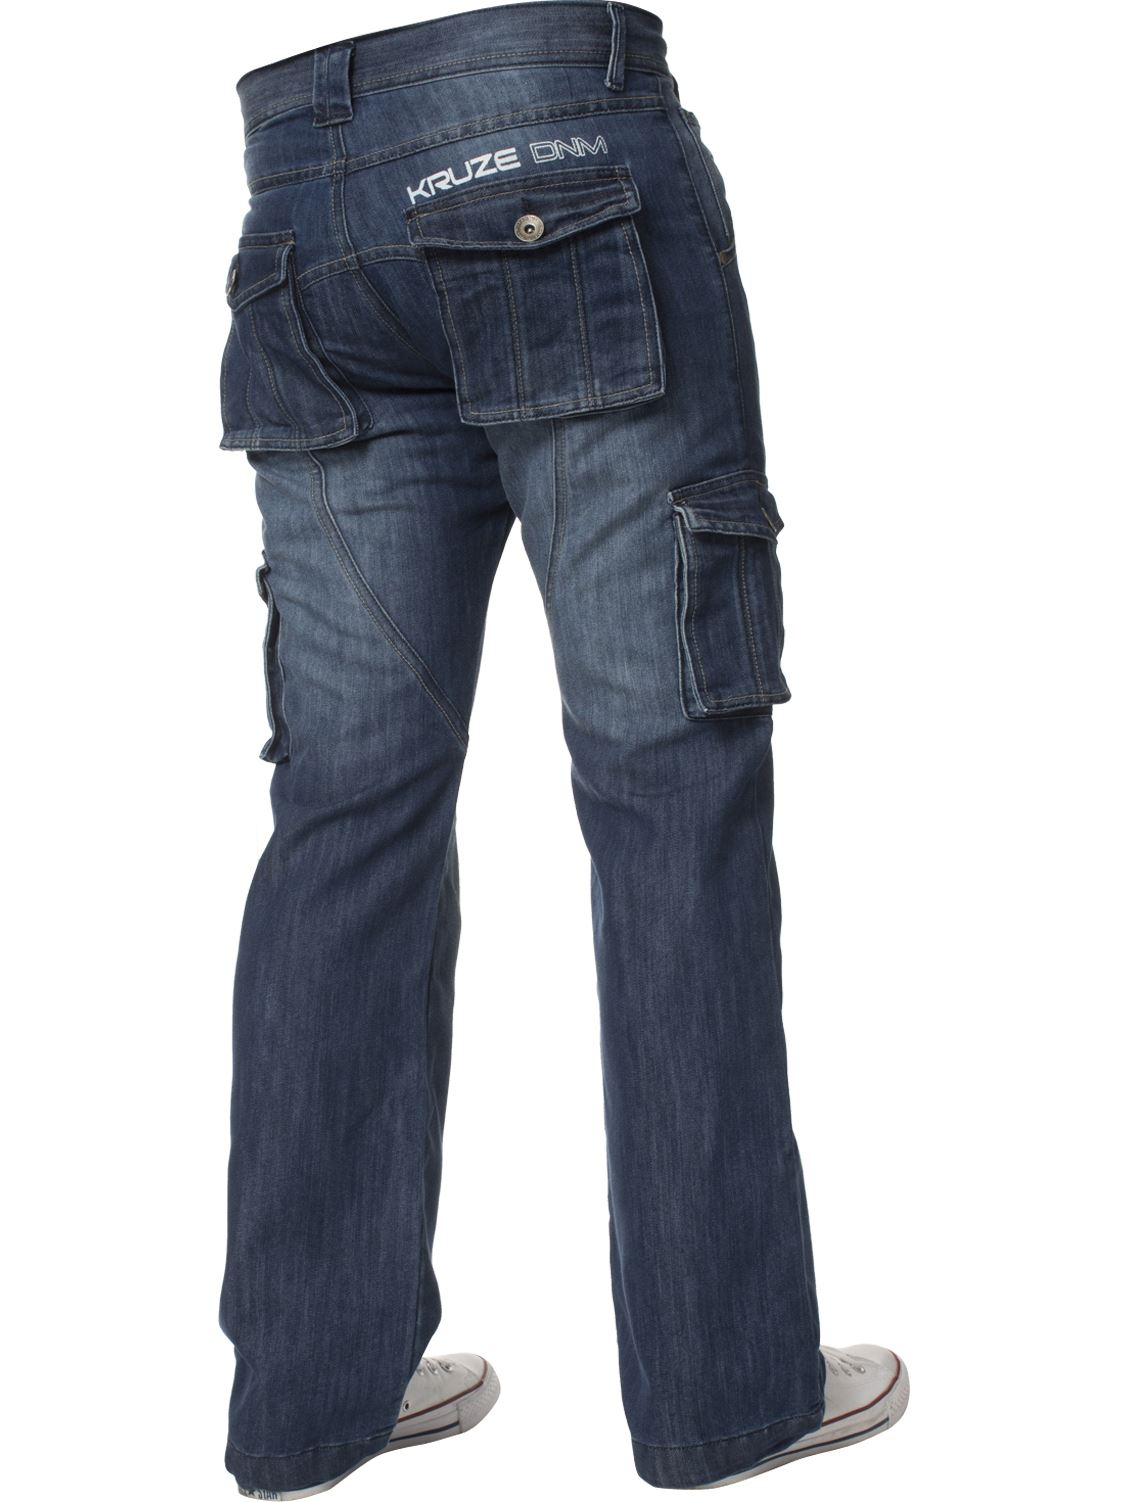 Mens-Cargo-Jeans-Combat-Trousers-Heavy-Duty-Work-Casual-Big-Tall-Denim-Pants thumbnail 53